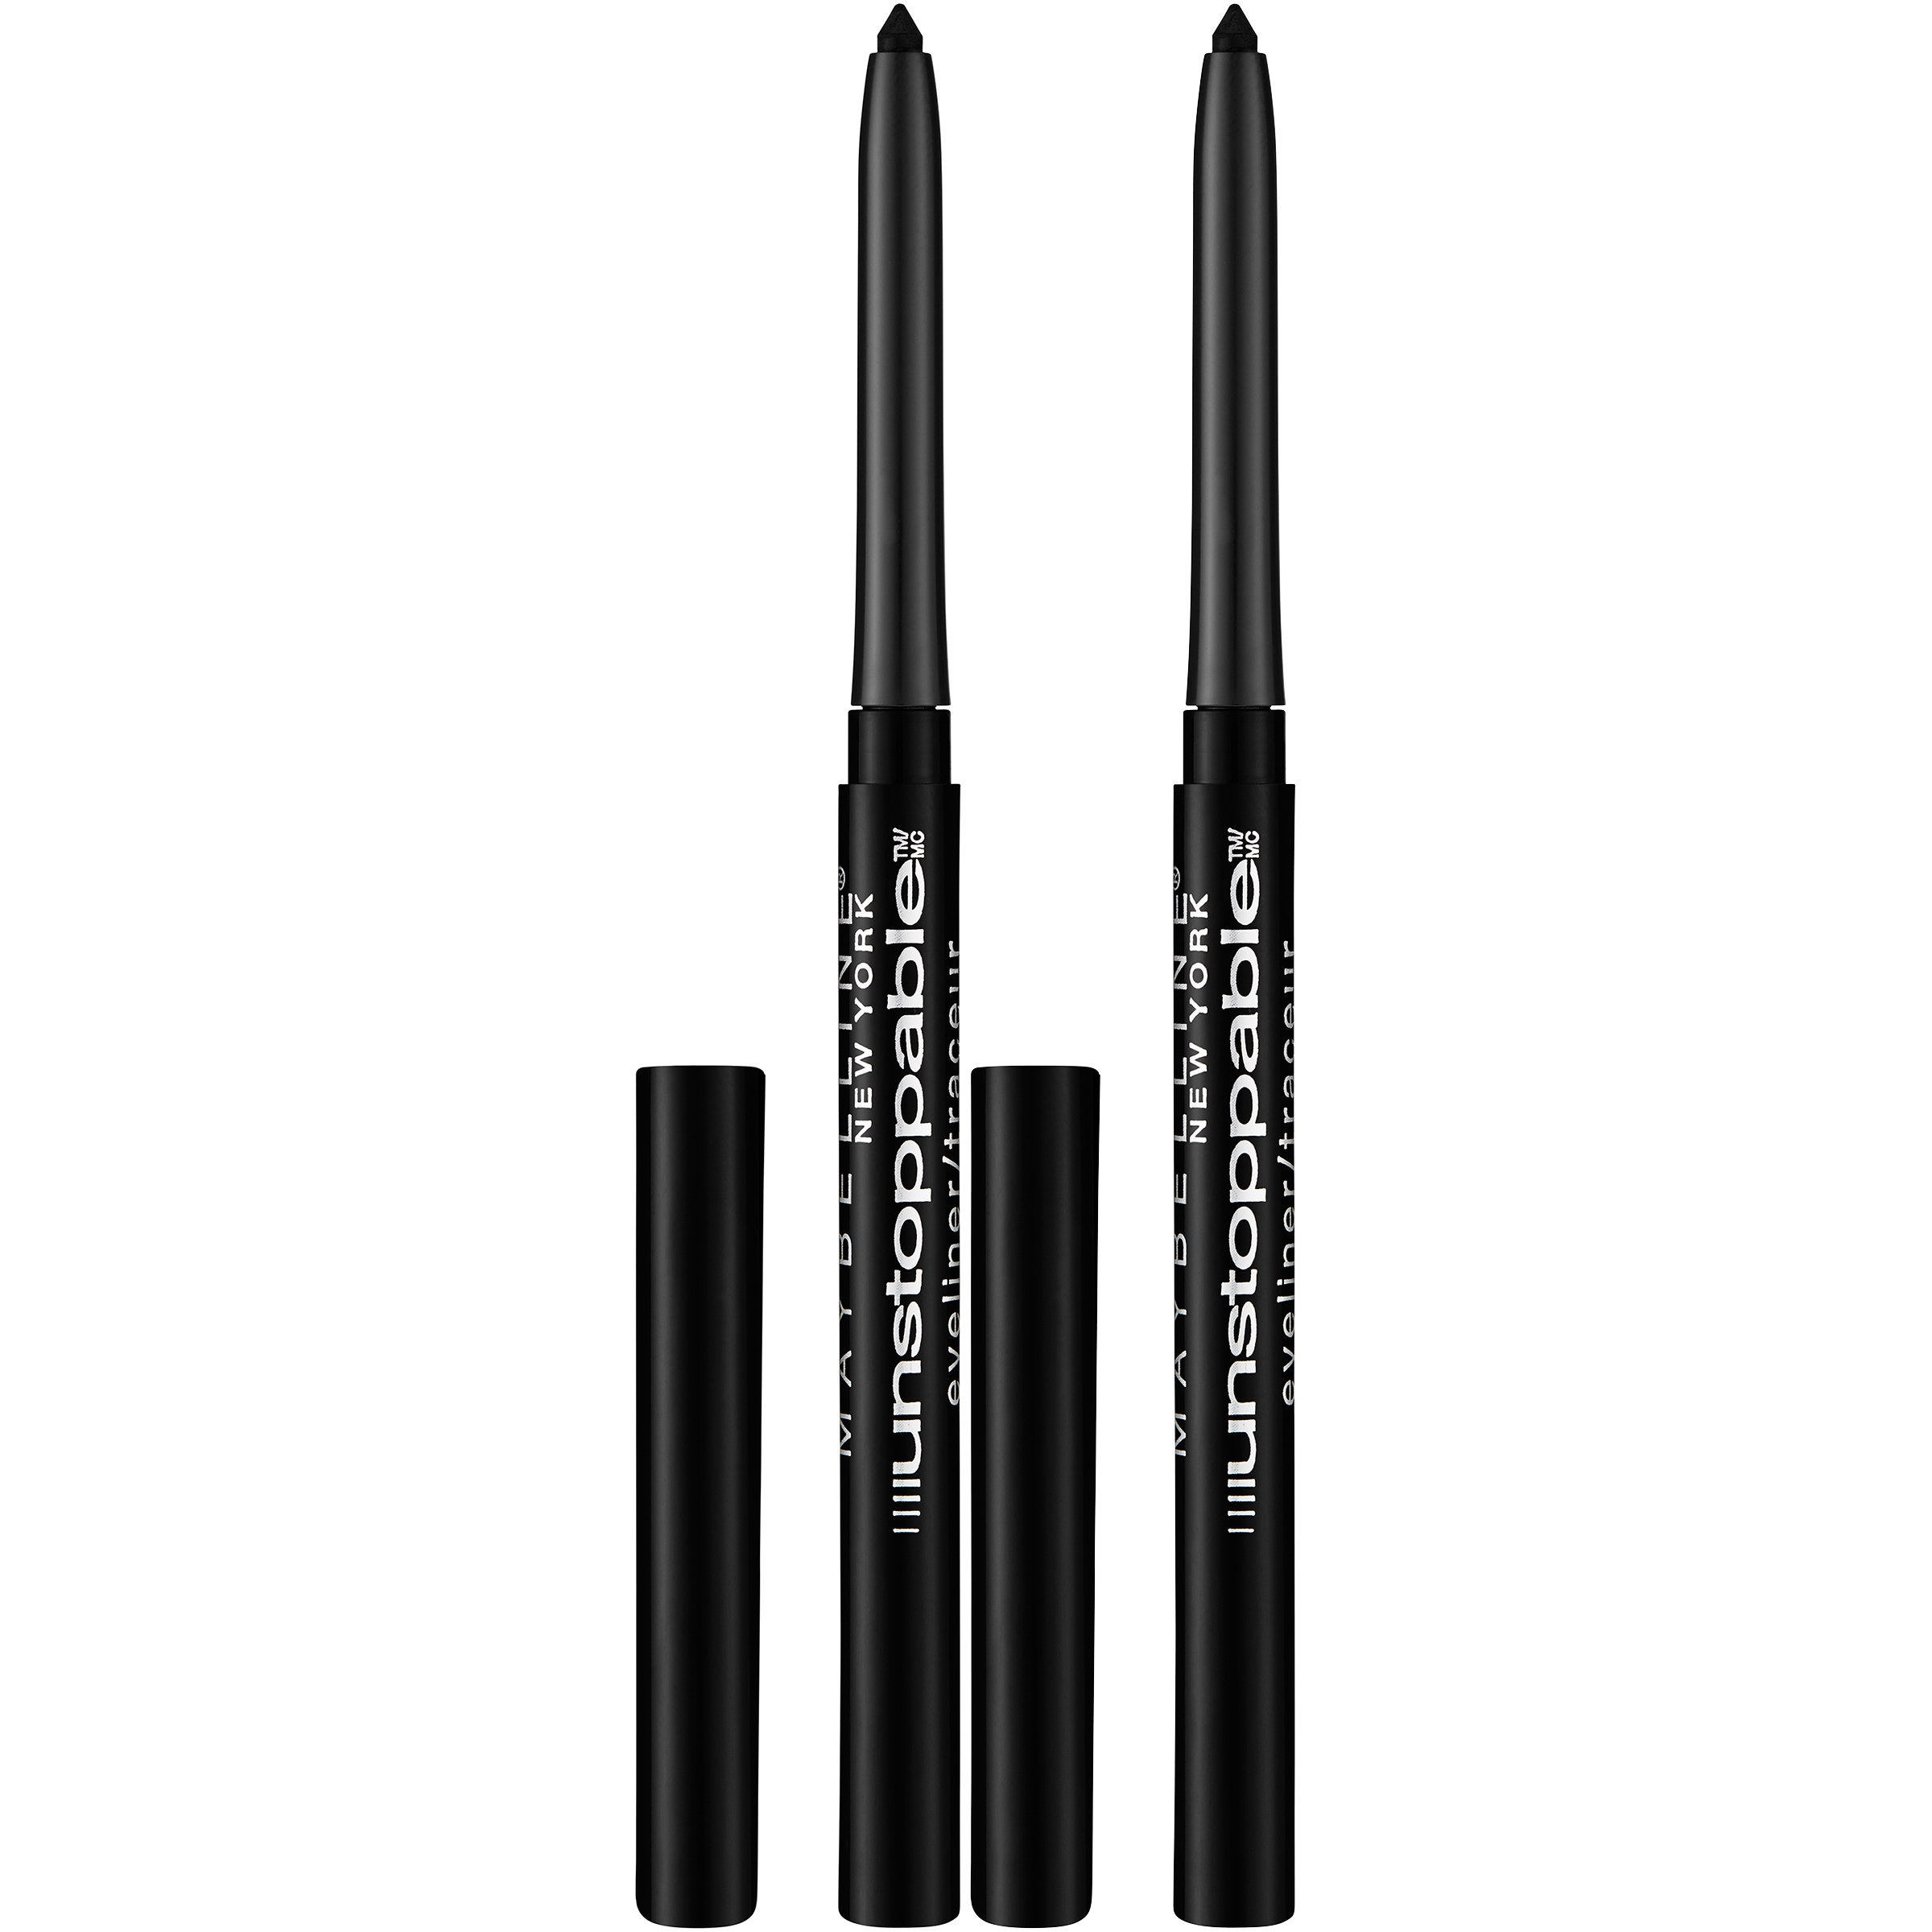 Maybelline New York Unstoppable Eyeliner Makeup, Espresso, 2 Count